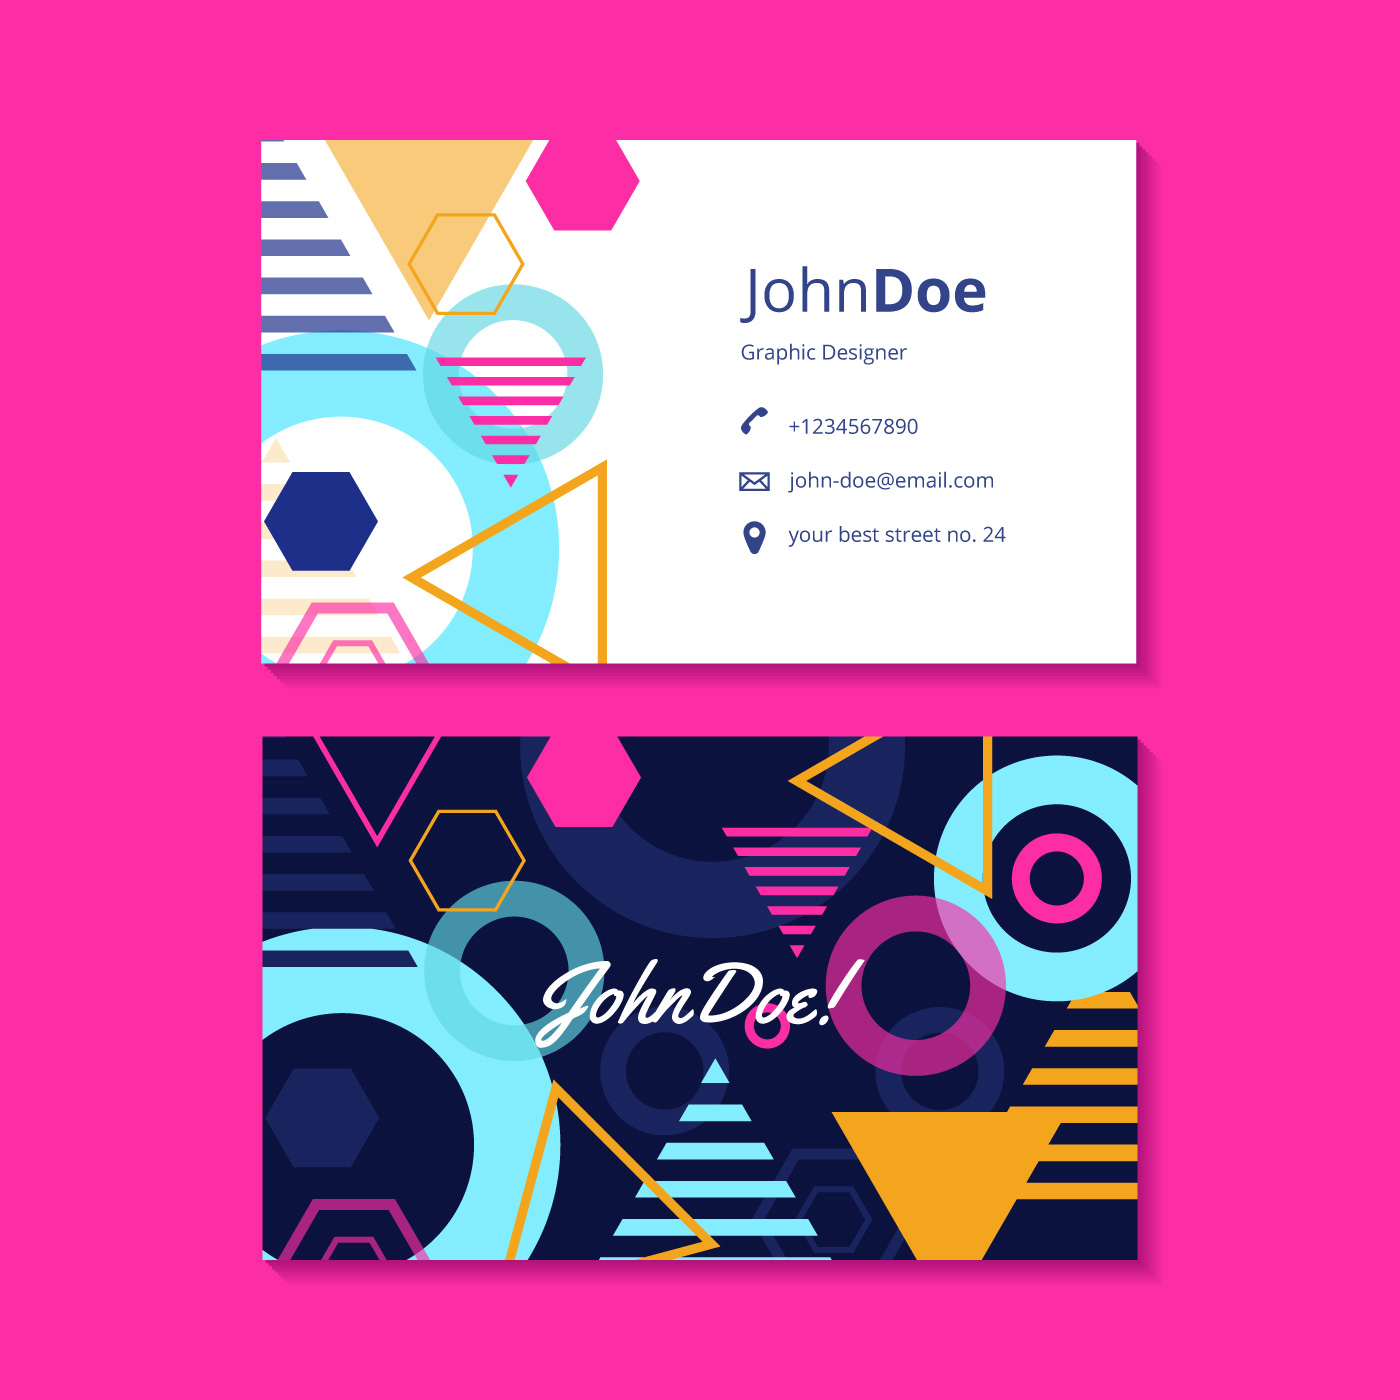 Graphic design business card template download free for Graphic design business card templates